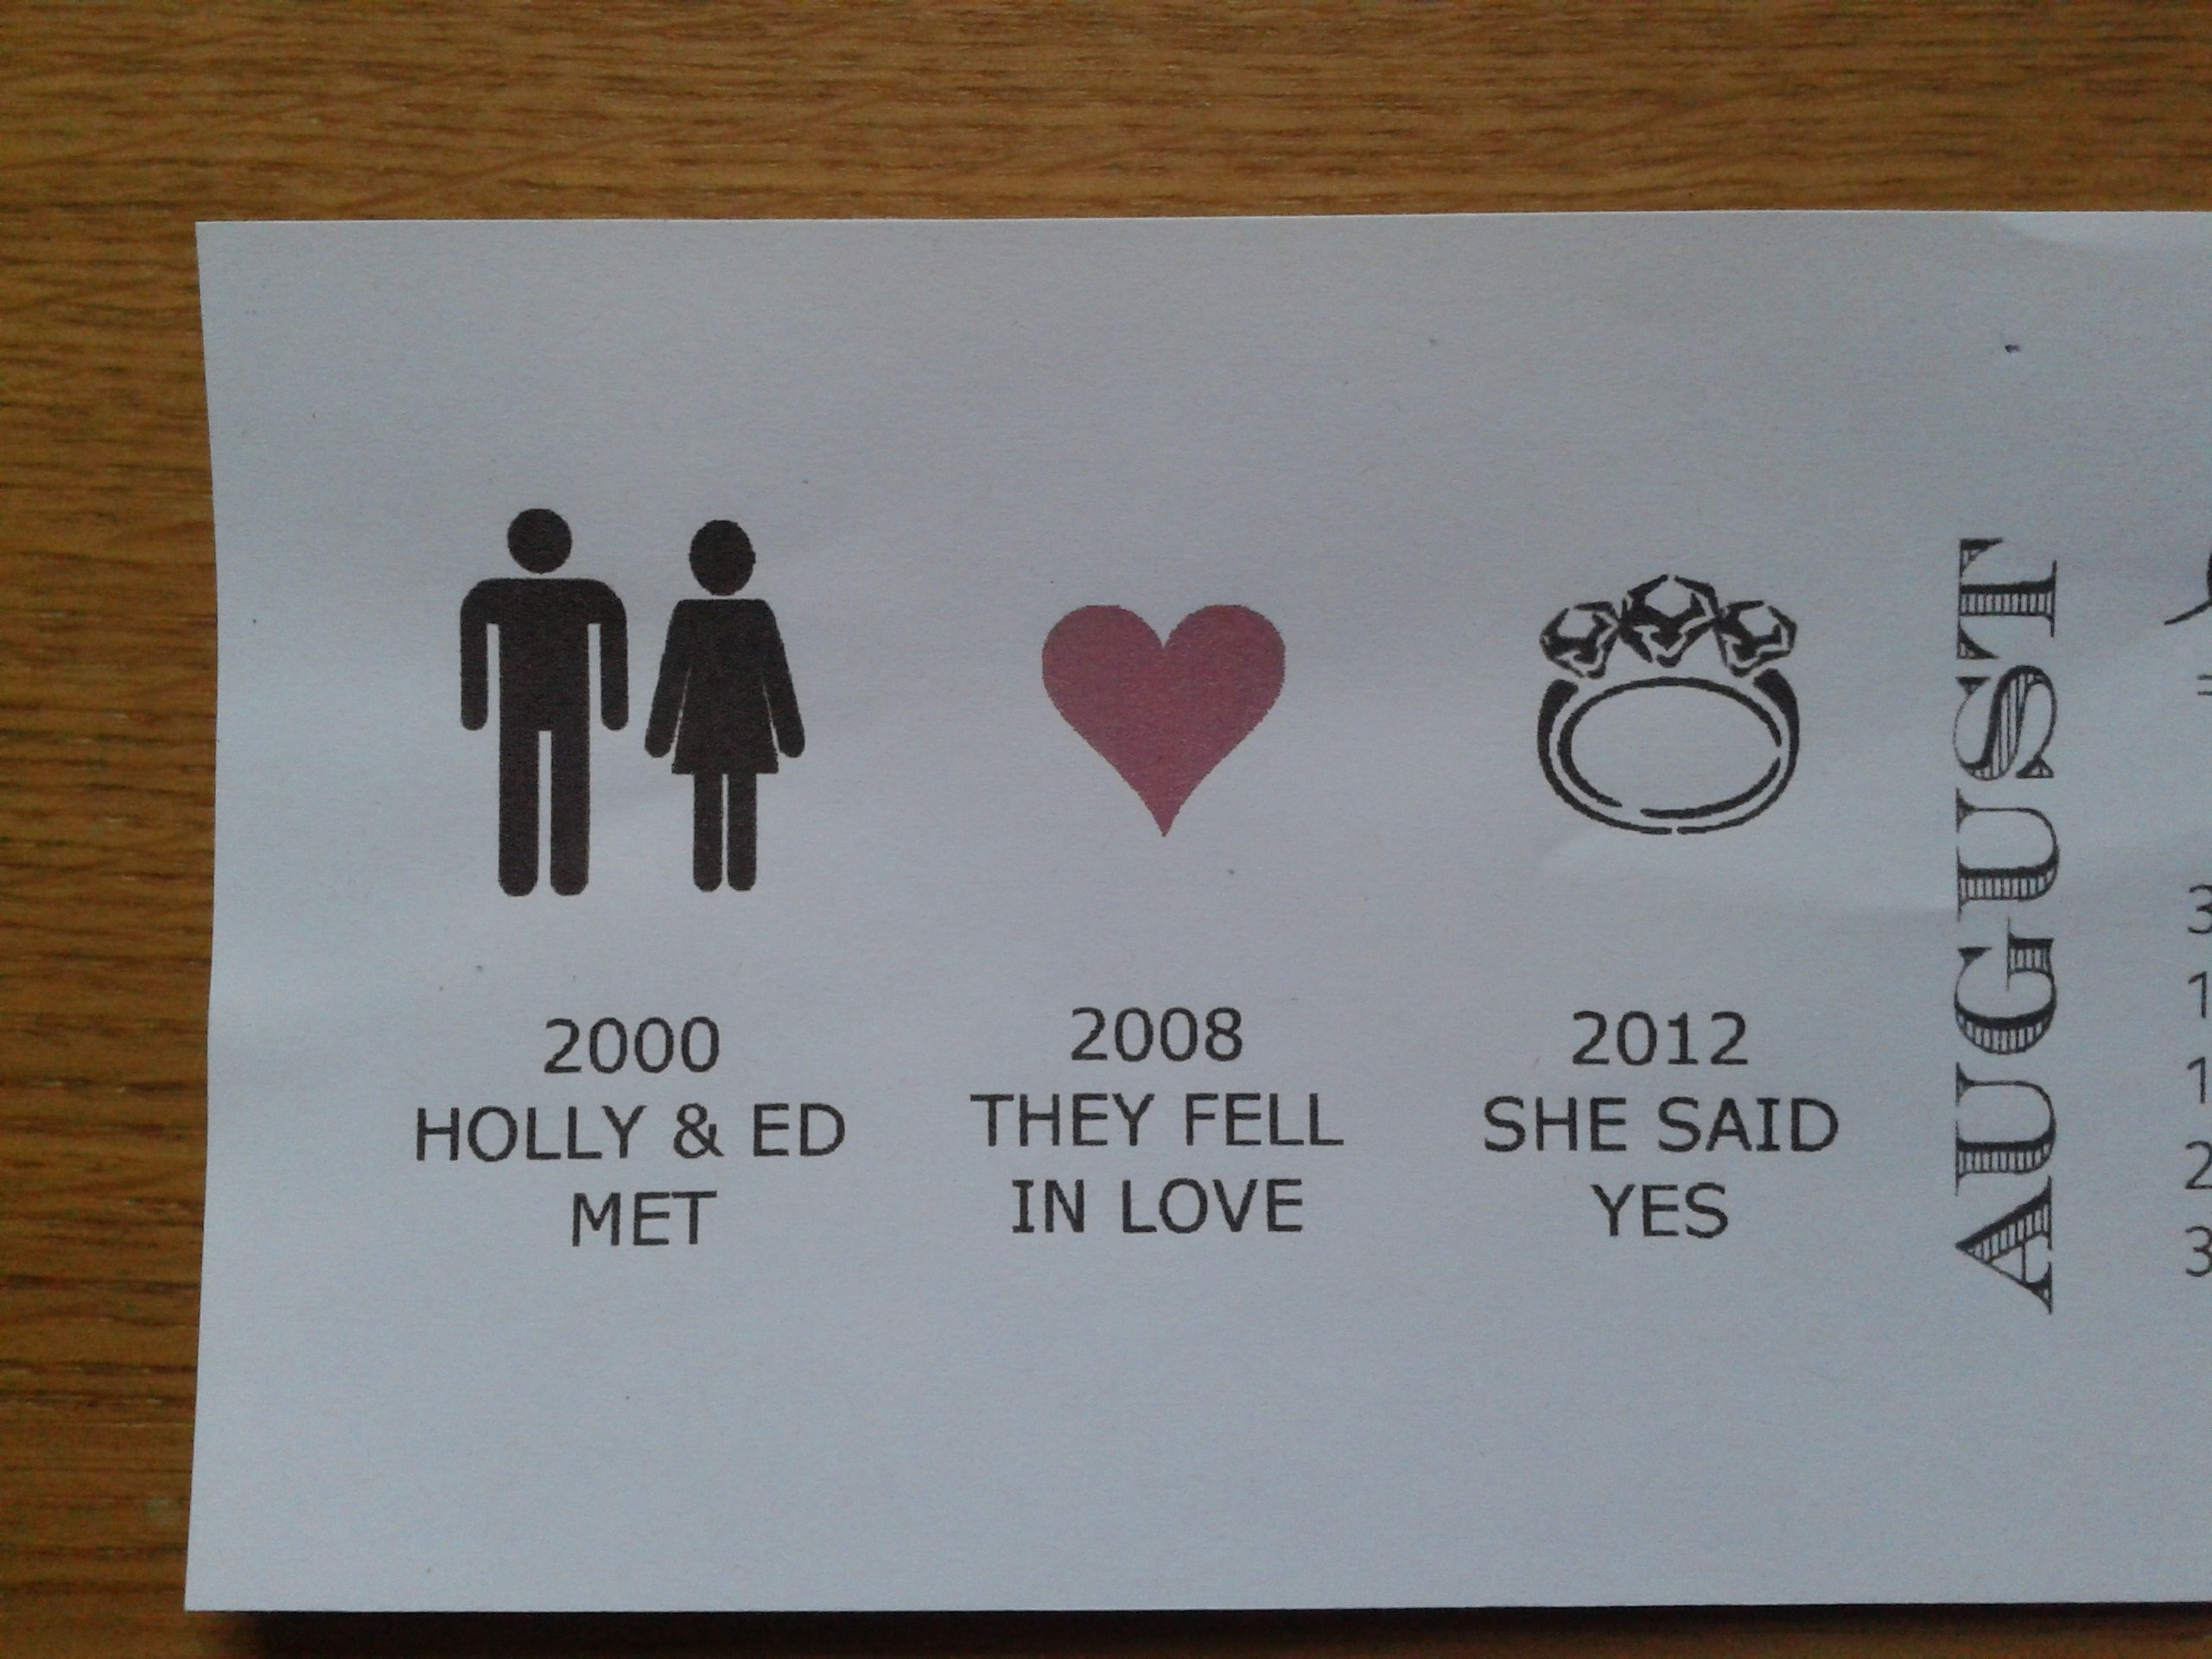 10 Amazing Save The Date Ideas Diy diy save the date cards any idea advice pictures please wedding 2 2021